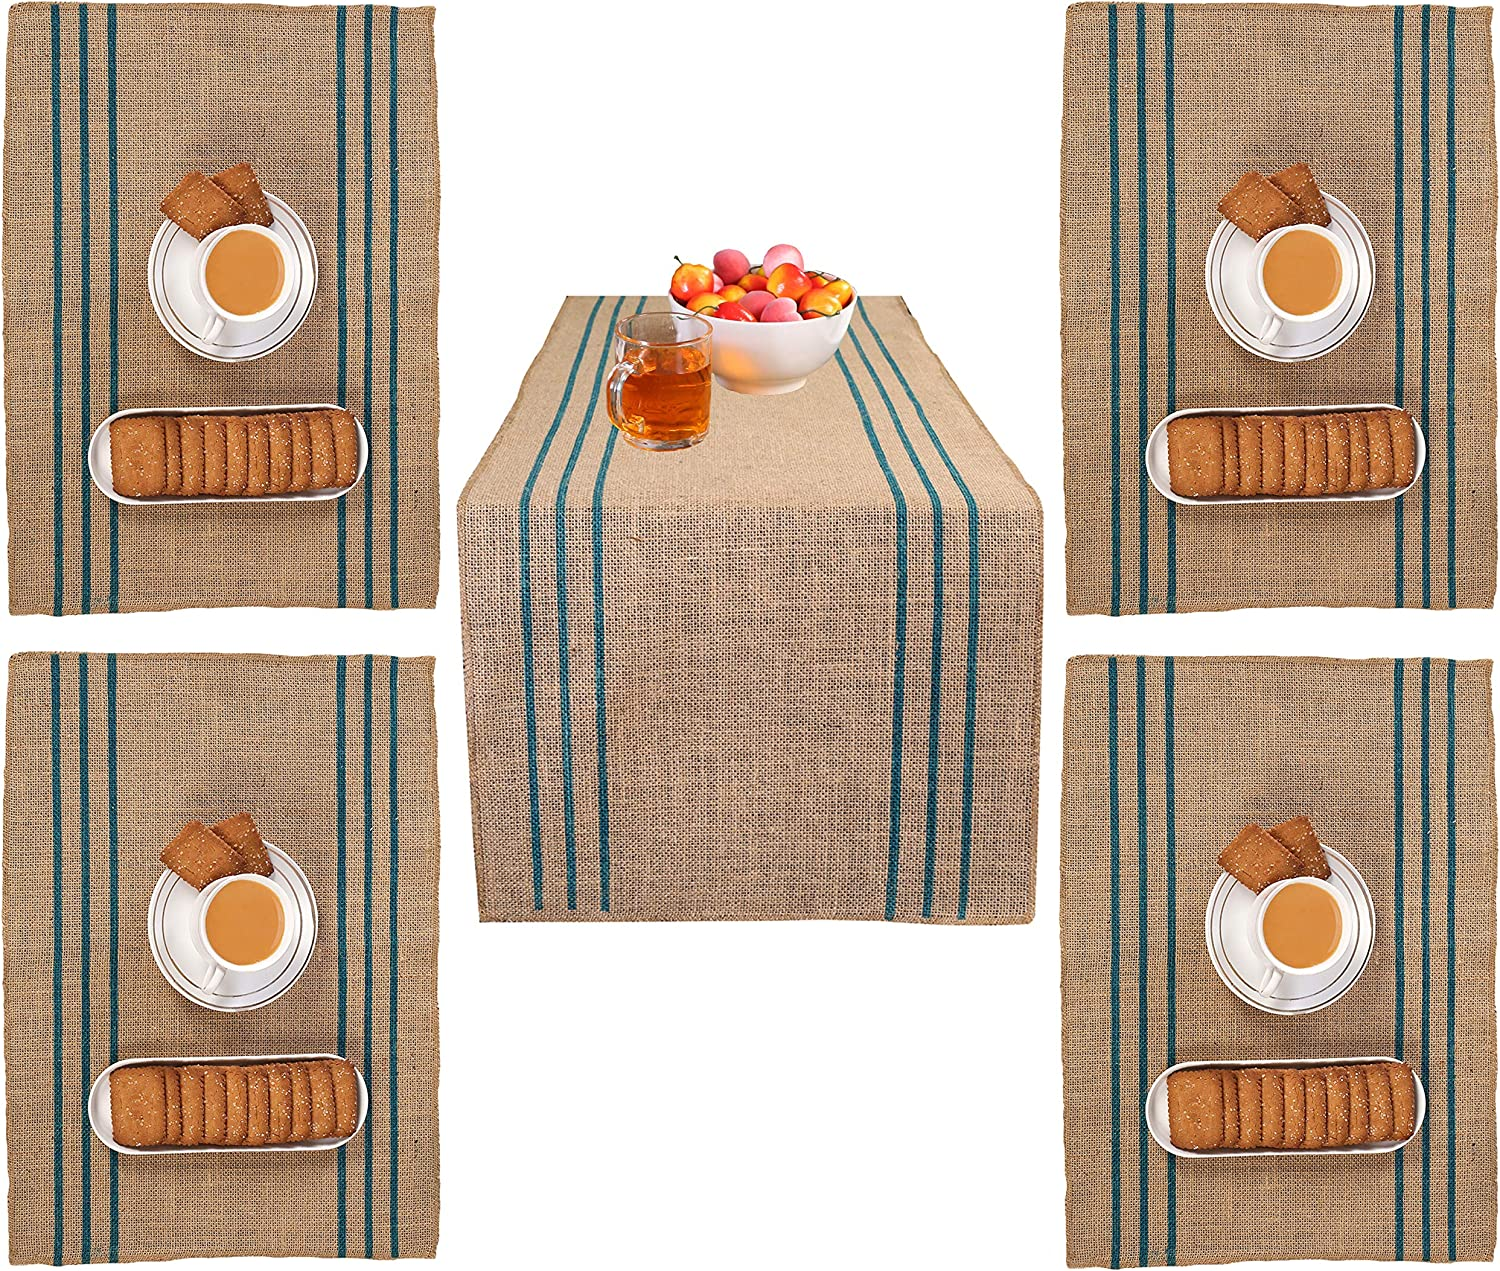 Farmhouse Stripe Burlap Table Runners 14x90 1Pack and 4Pack Jute Placemat 14x19 Natural with Teal Color Printed Stripe Combo Pack,Wedding Jute Table Runner, Decorative Table Runner